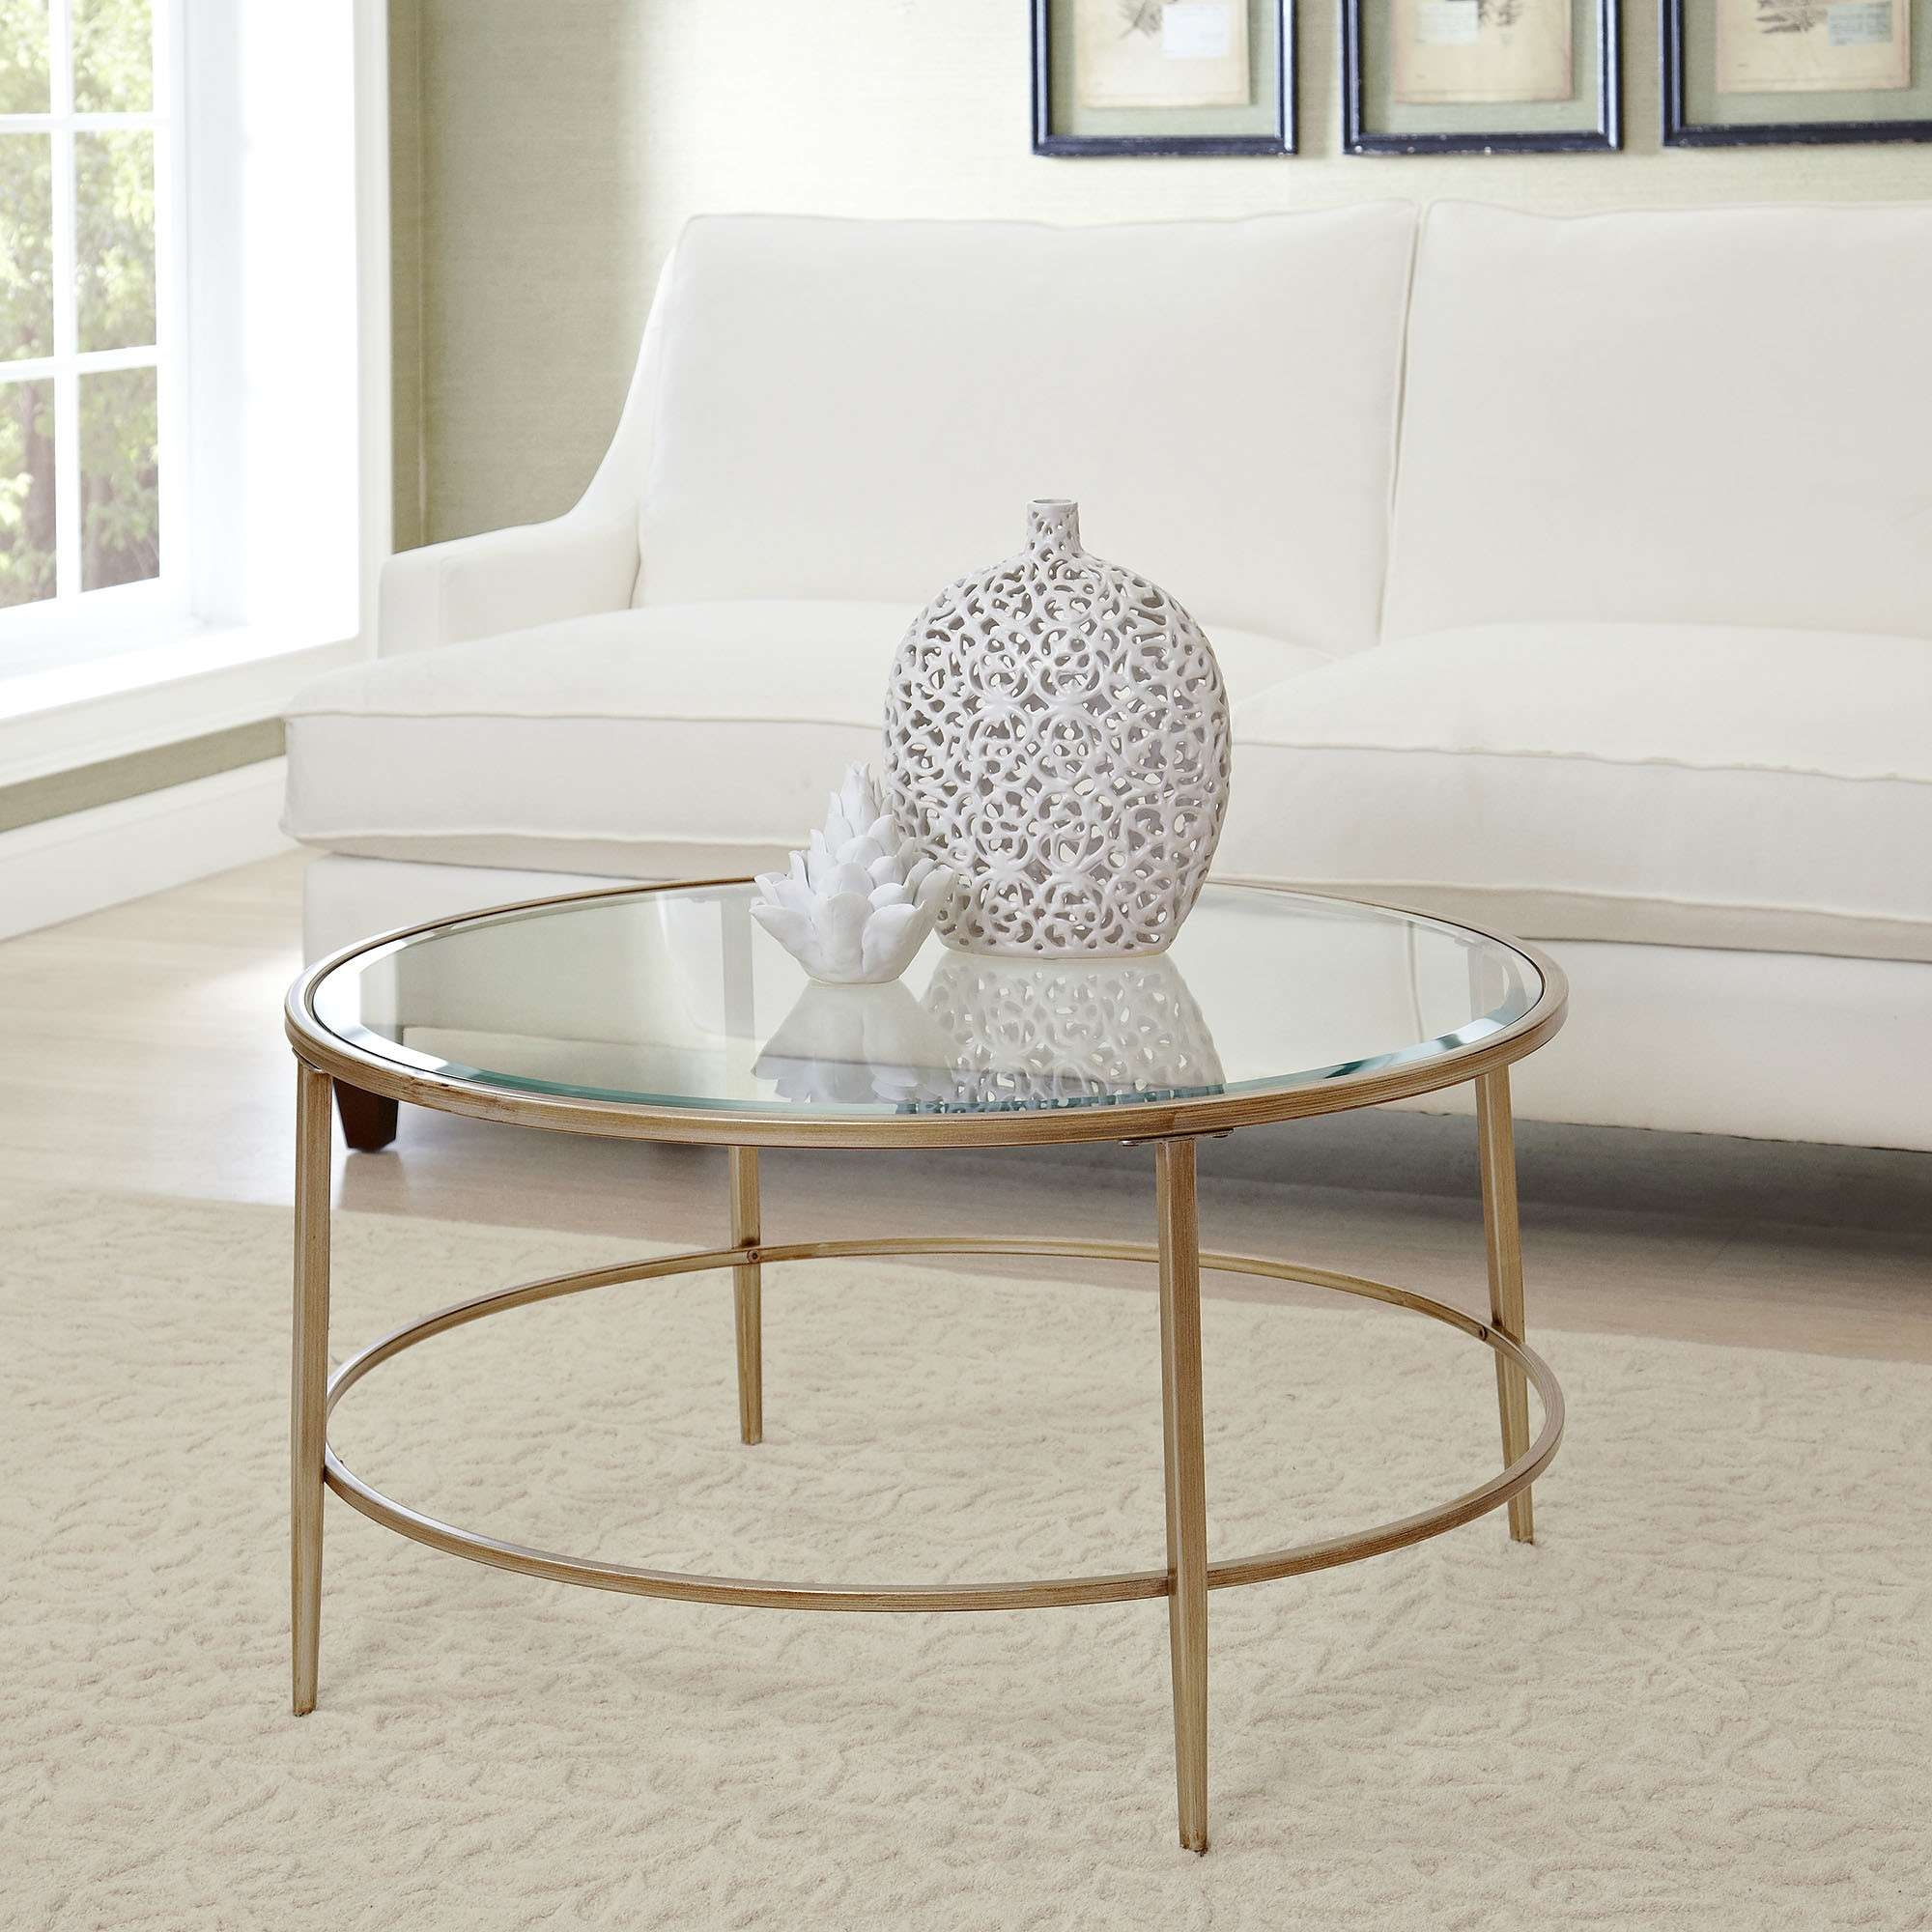 Coffee Tables : Coffee Table Wayfair Glass In Splendid Round In Most Recently Released Wayfair Coffee Tables (View 3 of 20)